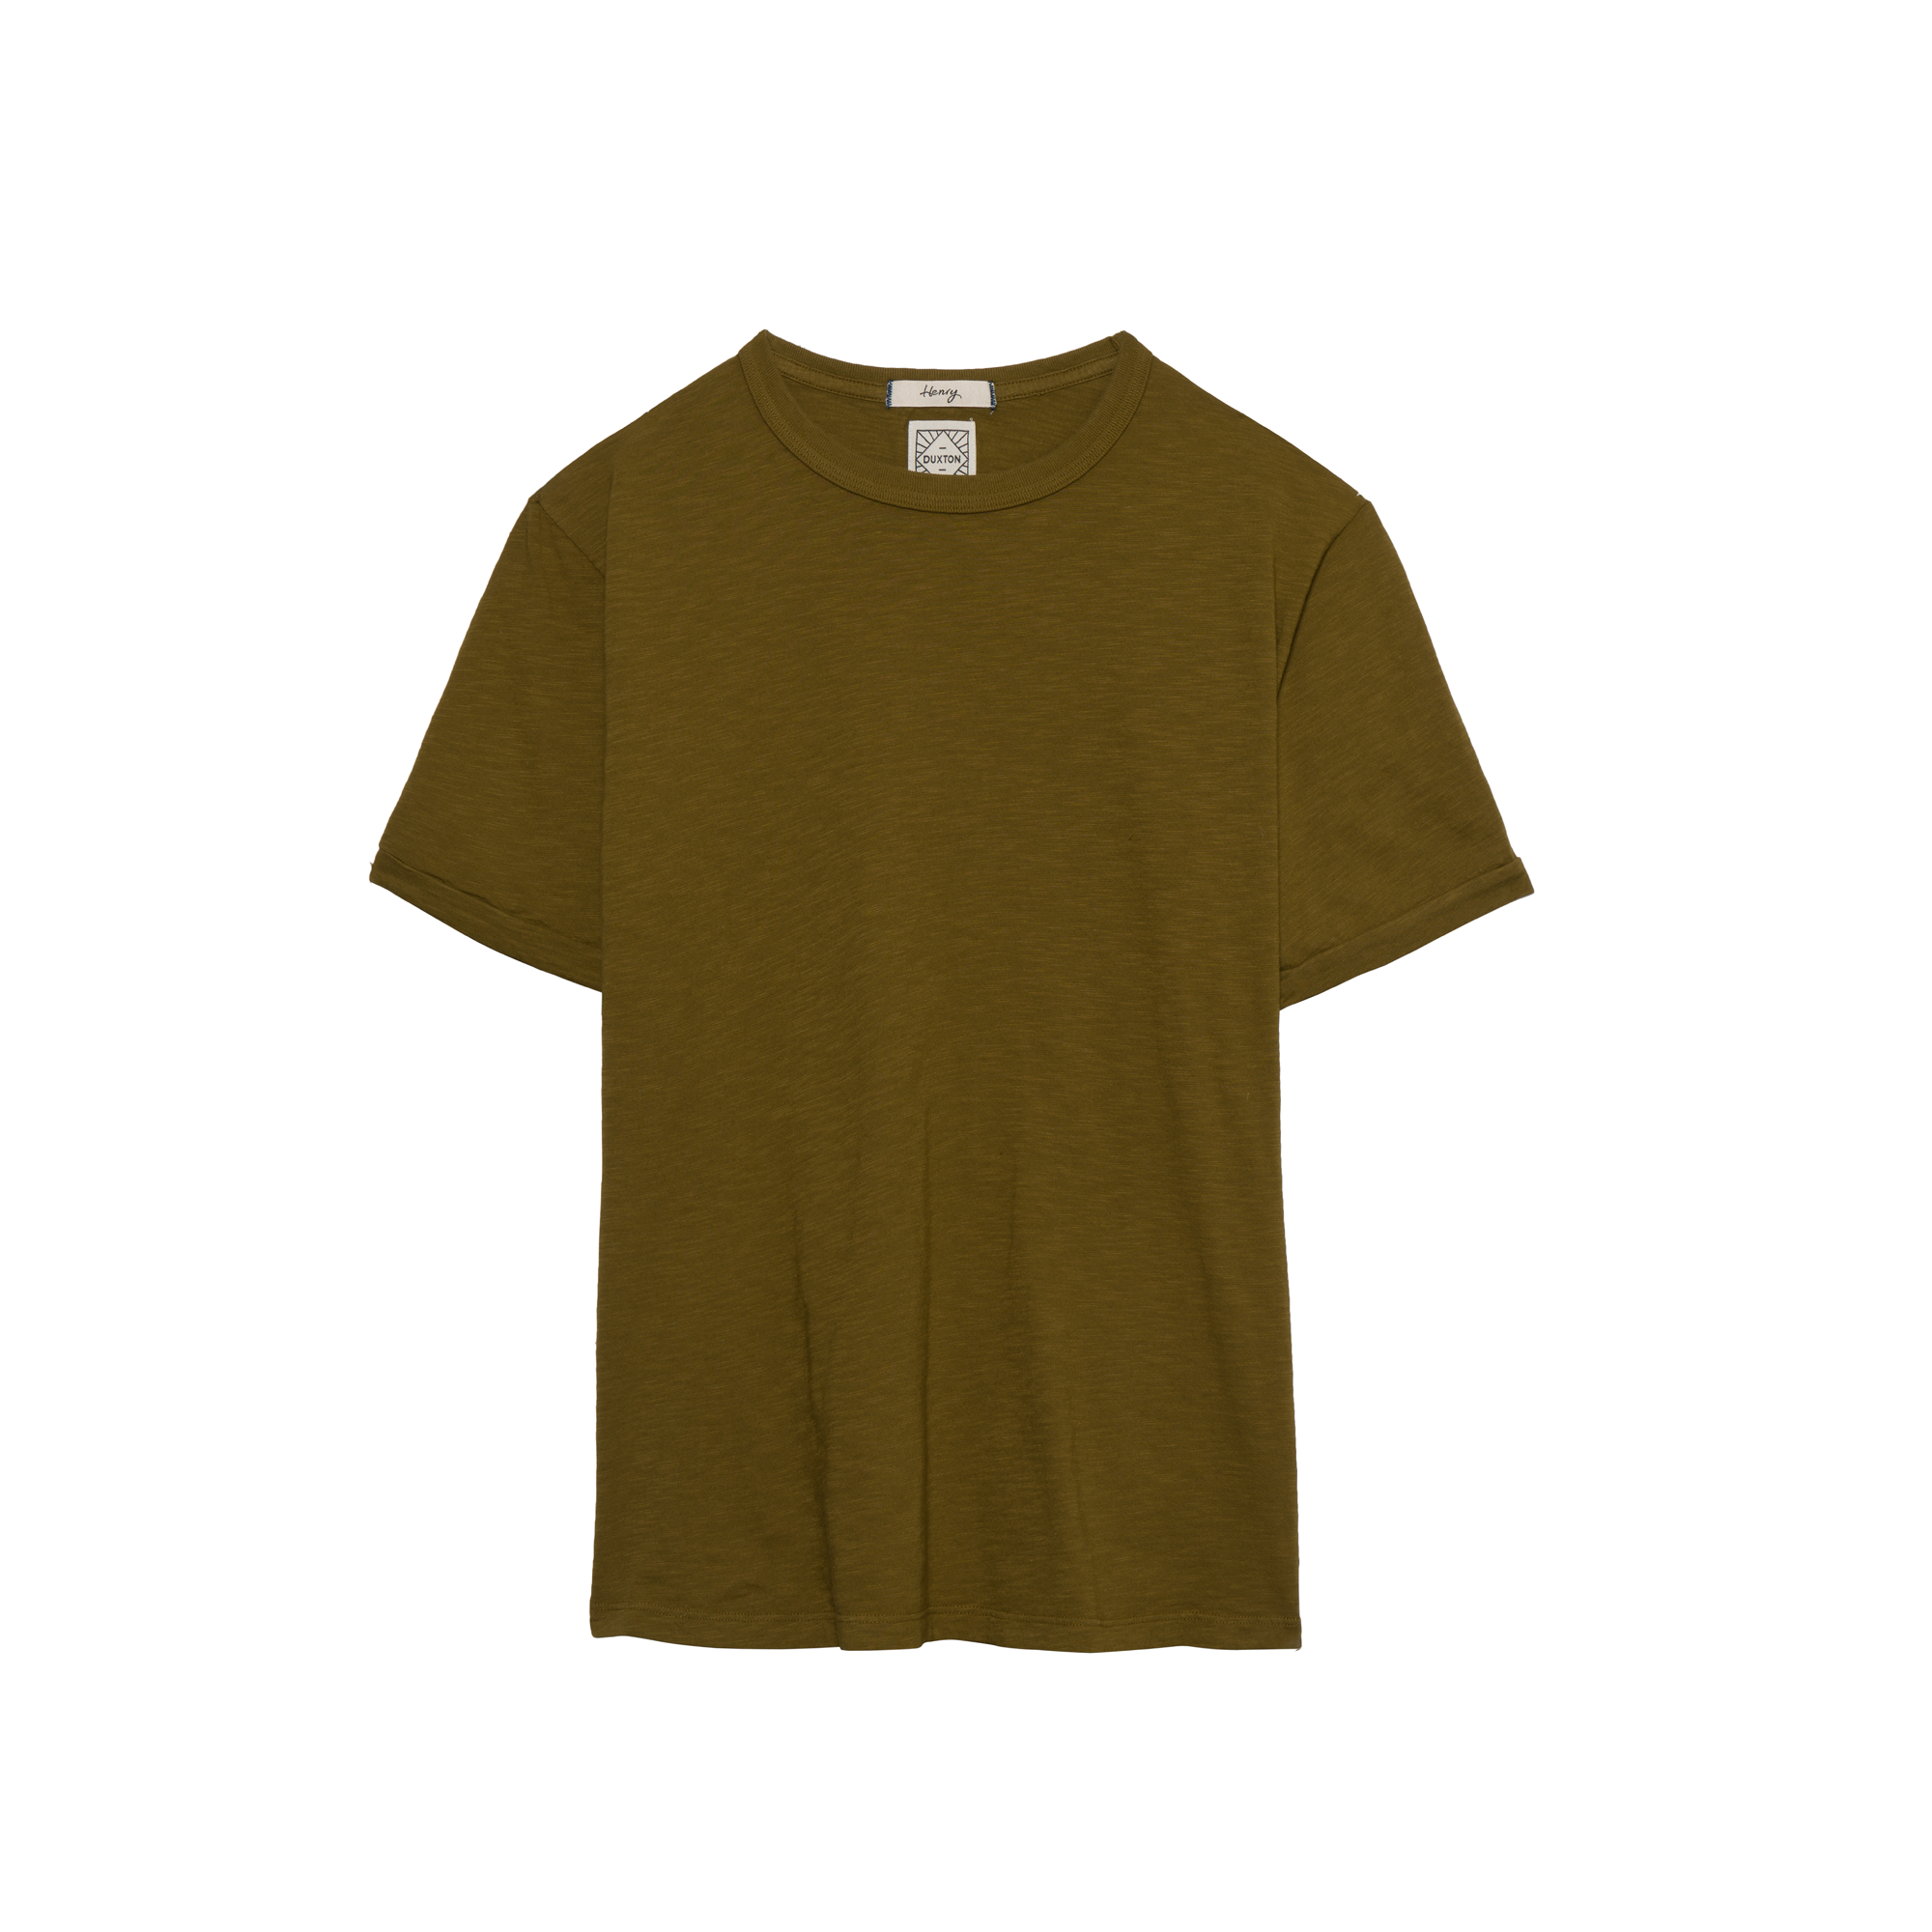 DUXTON mens Crew Neck Tee - Moss Green